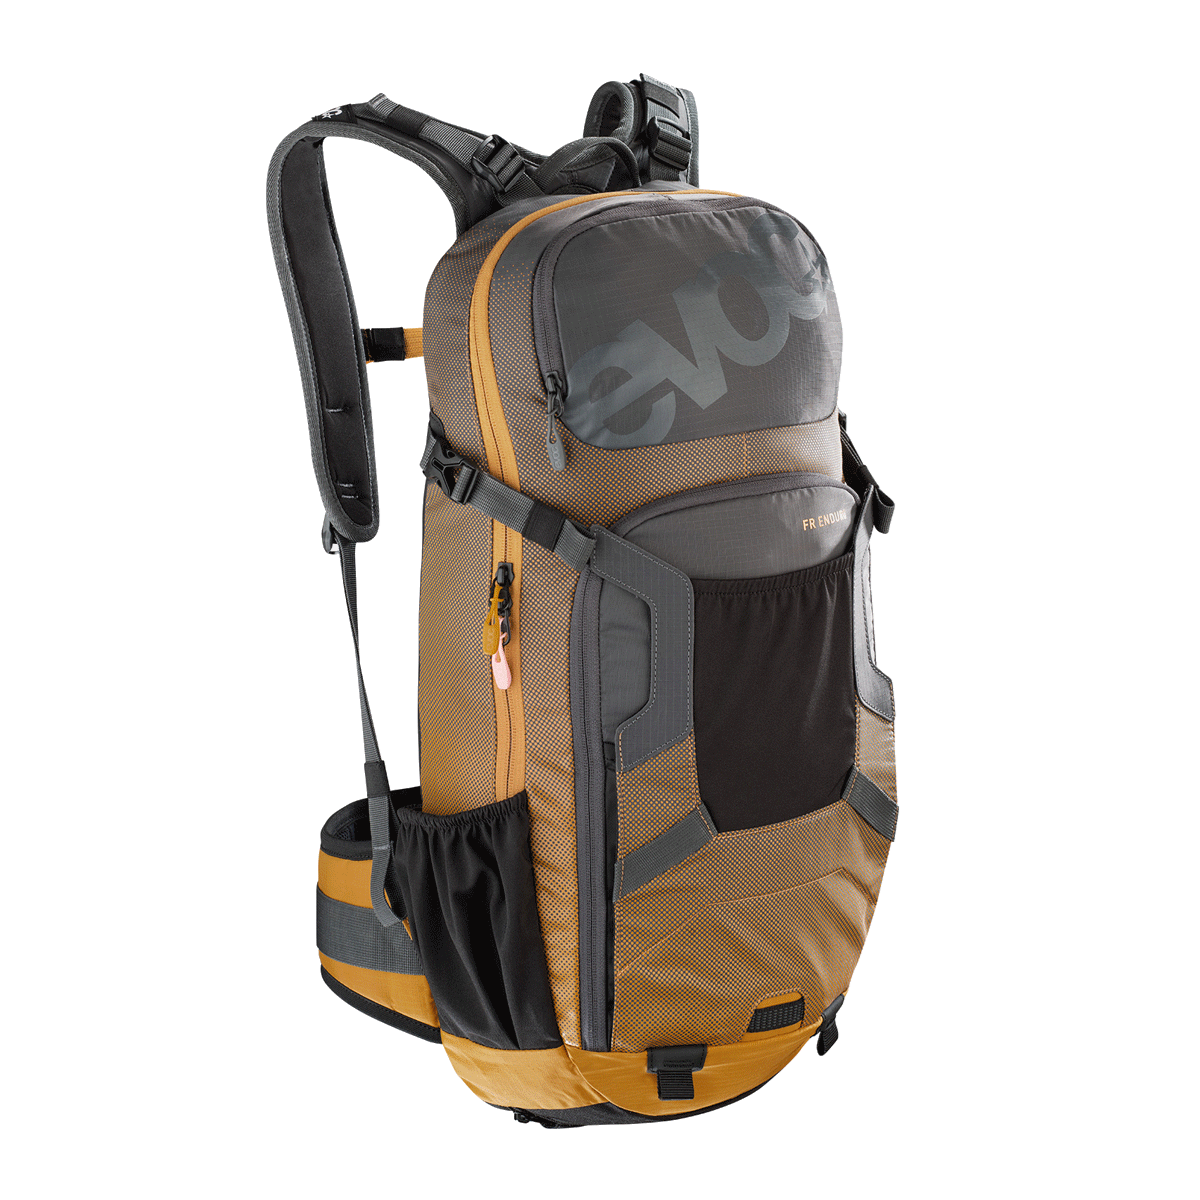 Evoc Accessories > Bags & Seatpacks Grey / Small EVOC FR ENDURO PROTECTOR BACKPACK